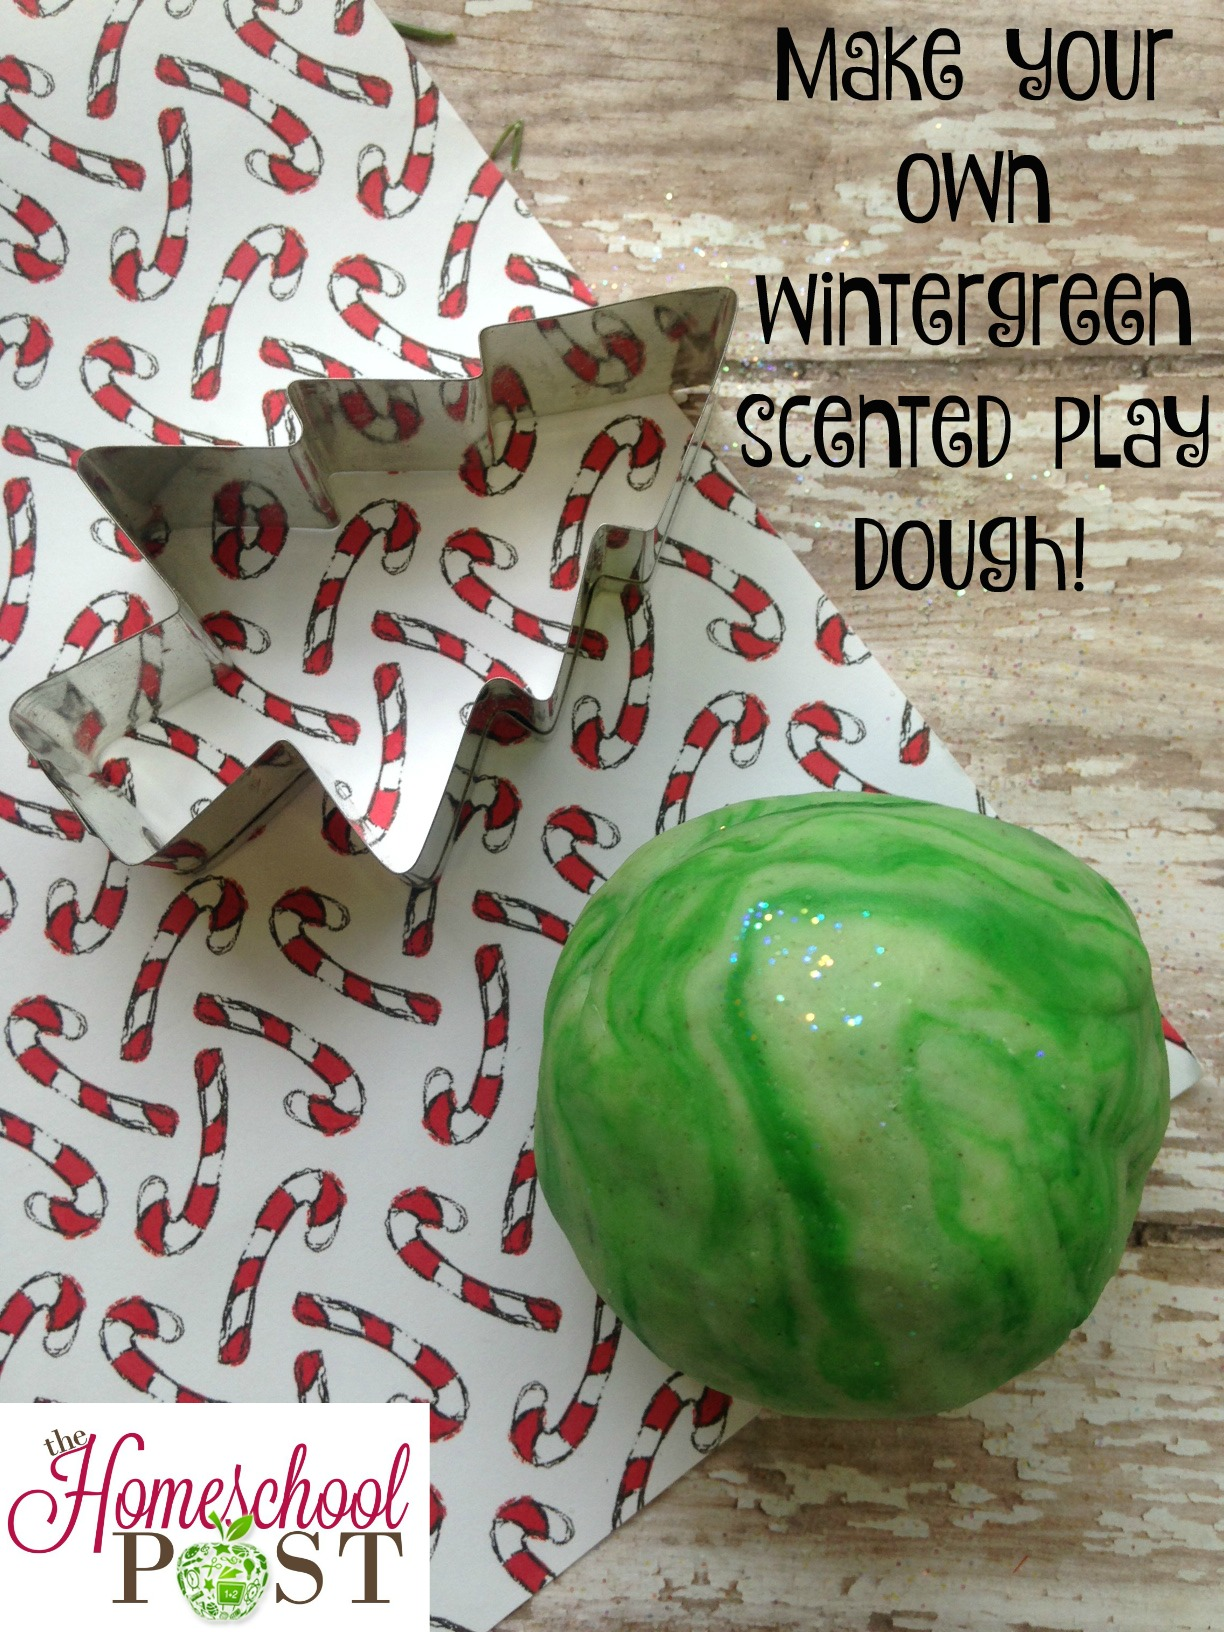 Make your own DIY wintergreen play dough! Perfect winter indoor project. hsbapost.com